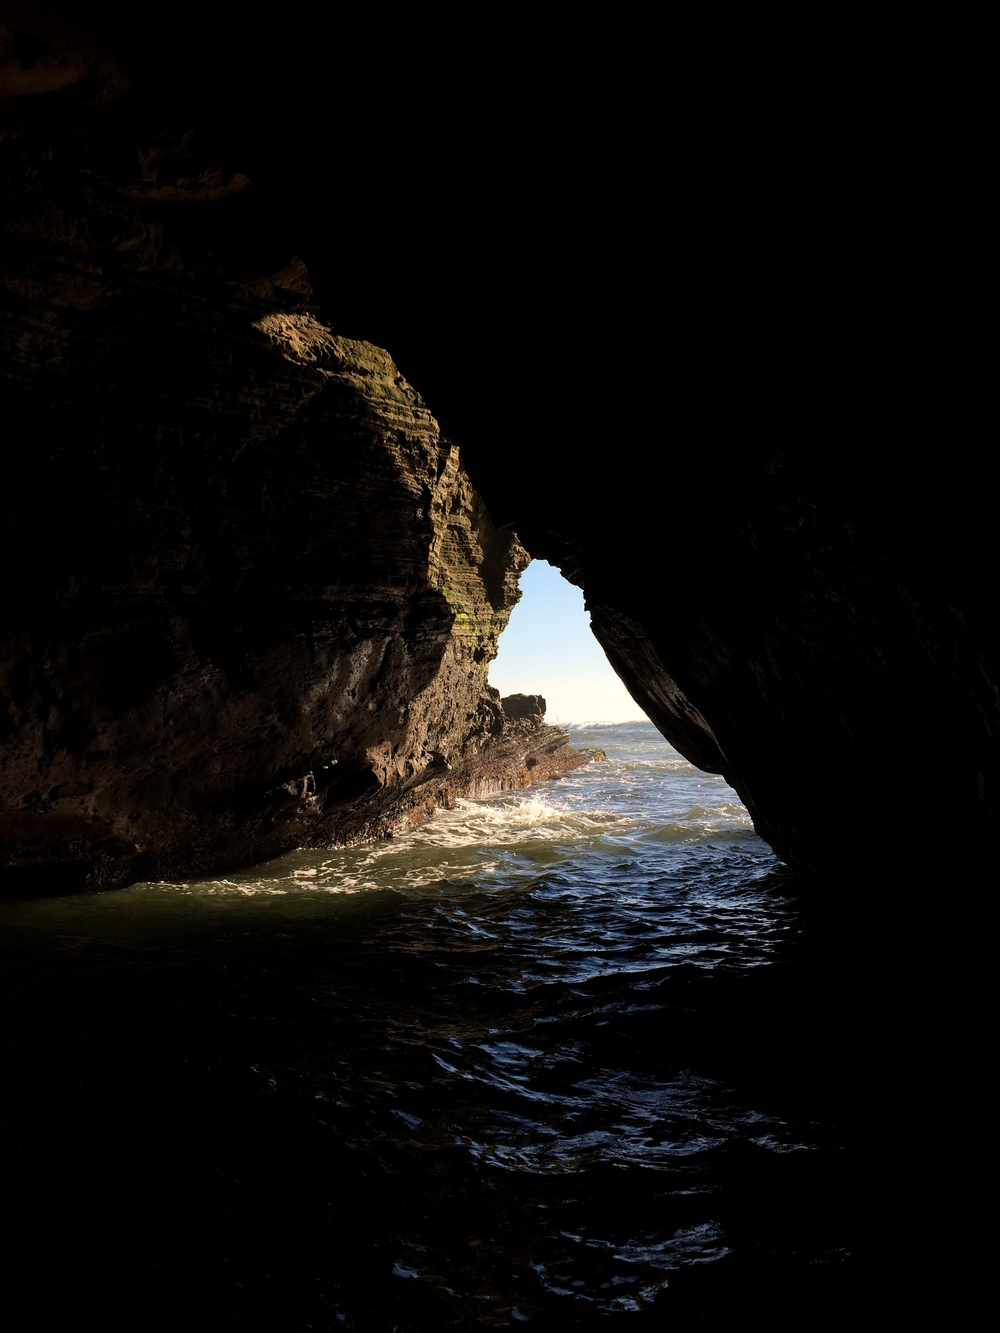 Secret sea cave cabrillo national monument the last adventurer directions cabrillo national monument is the only national park service property located in san diego county and it is a beautiful spot that is located at nvjuhfo Choice Image